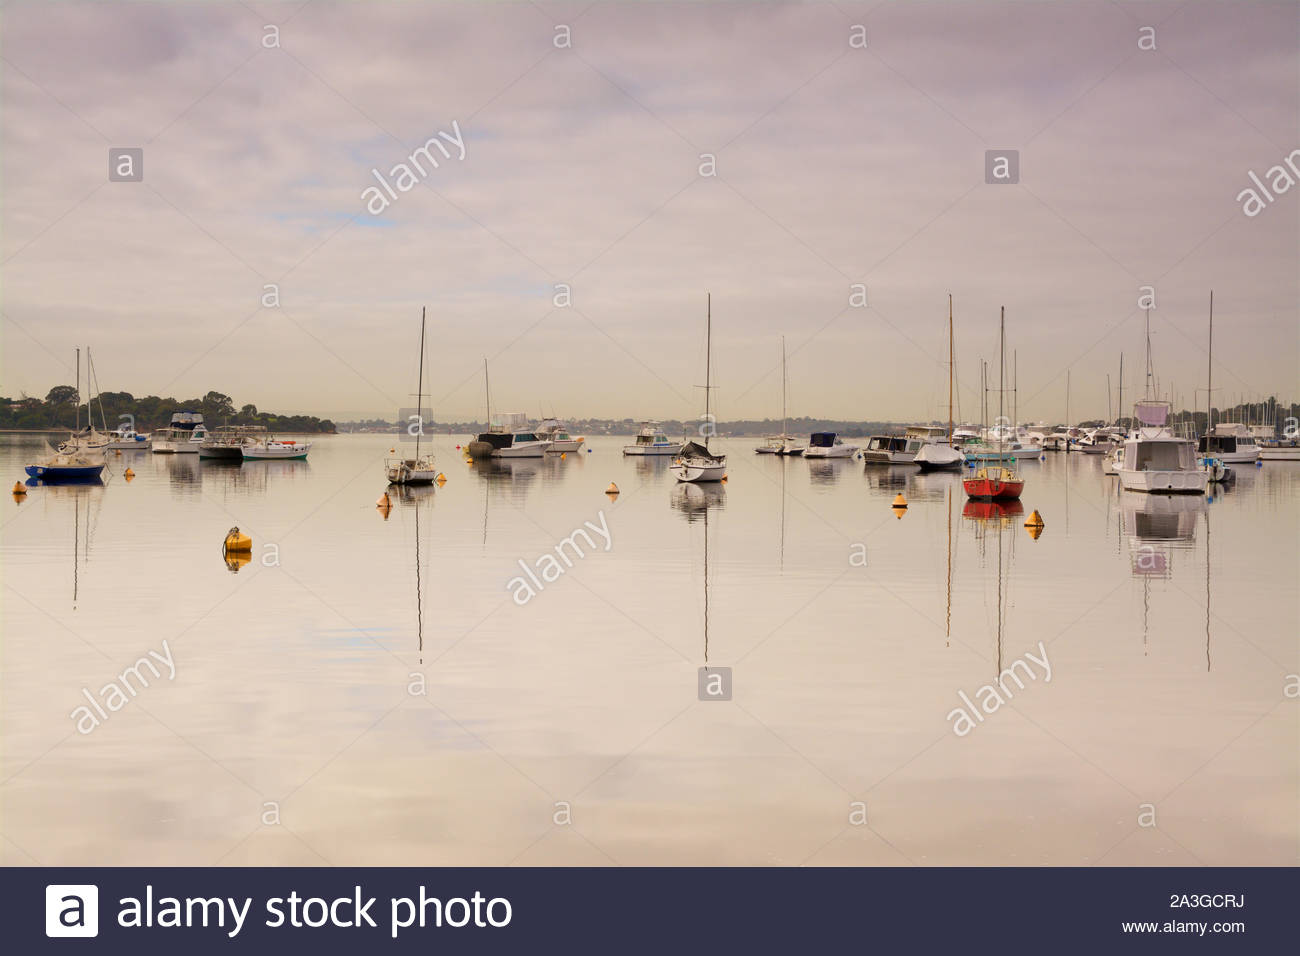 boats-in-freshwater-bay-on-the-swan-river-in-the-suburb-of-peppermint-grove-perth-western-australia-2A3GCRJ.jpg